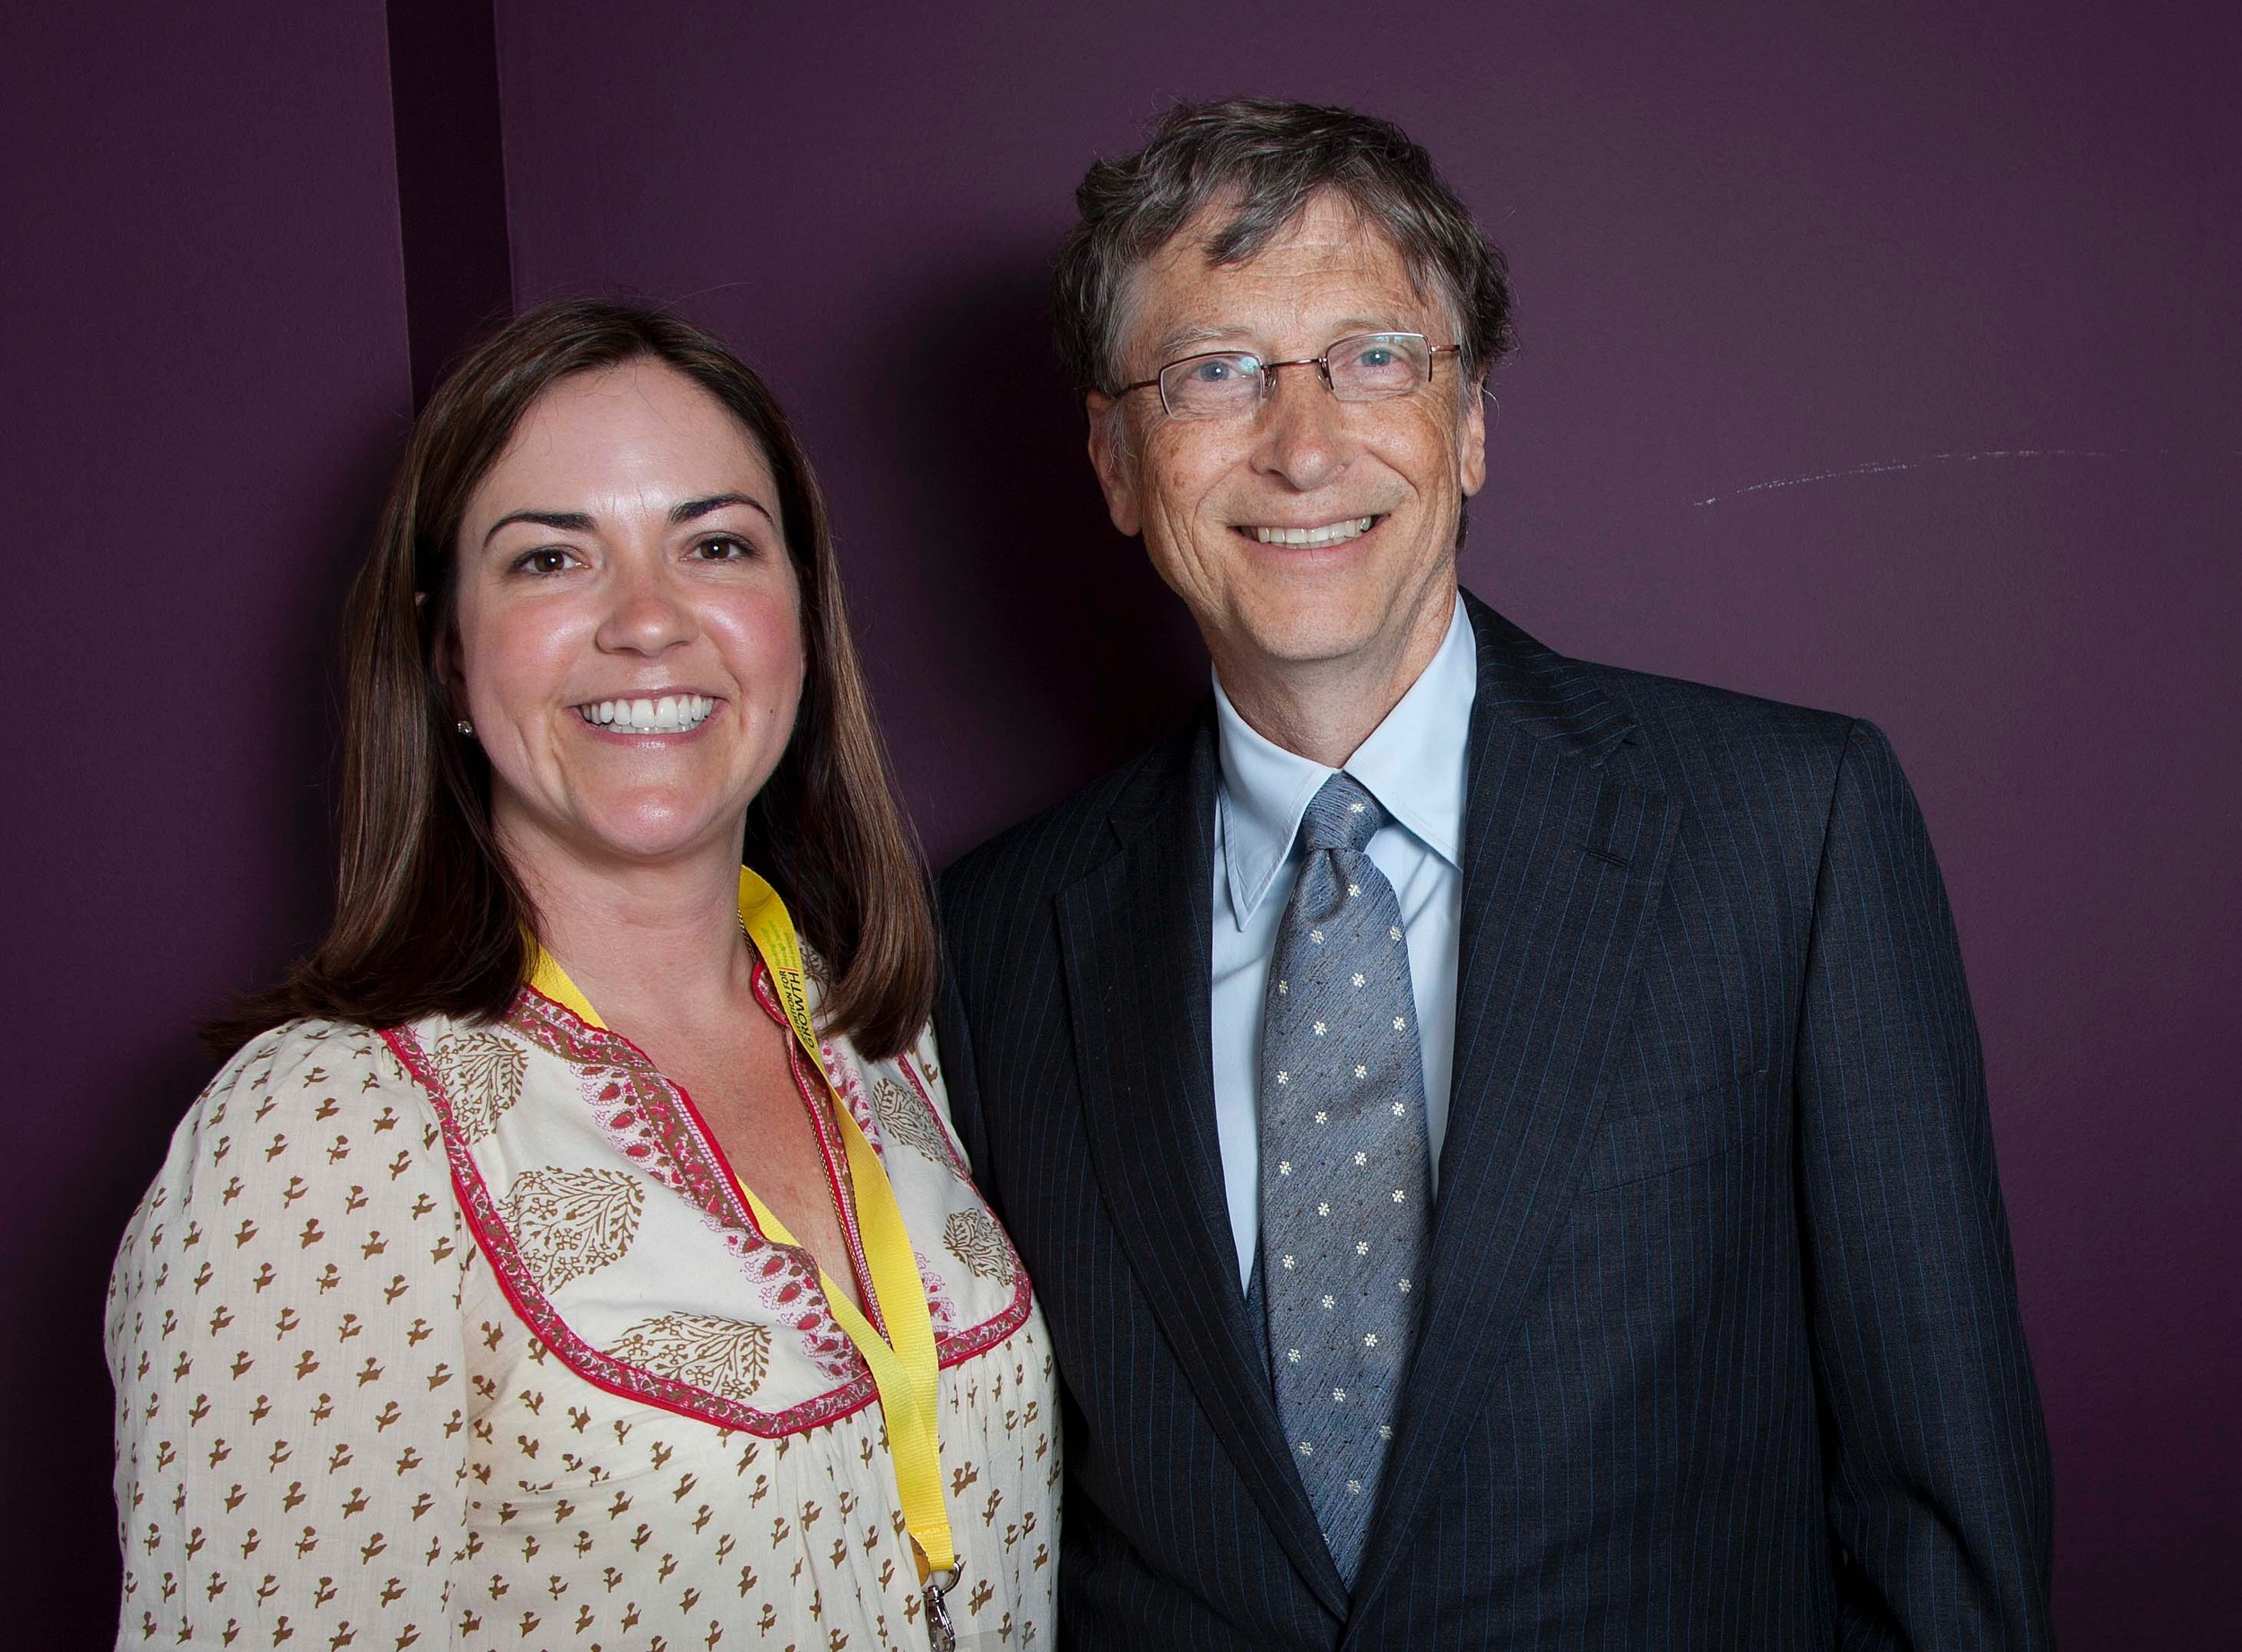 Sharon Hendry and Bill Gates